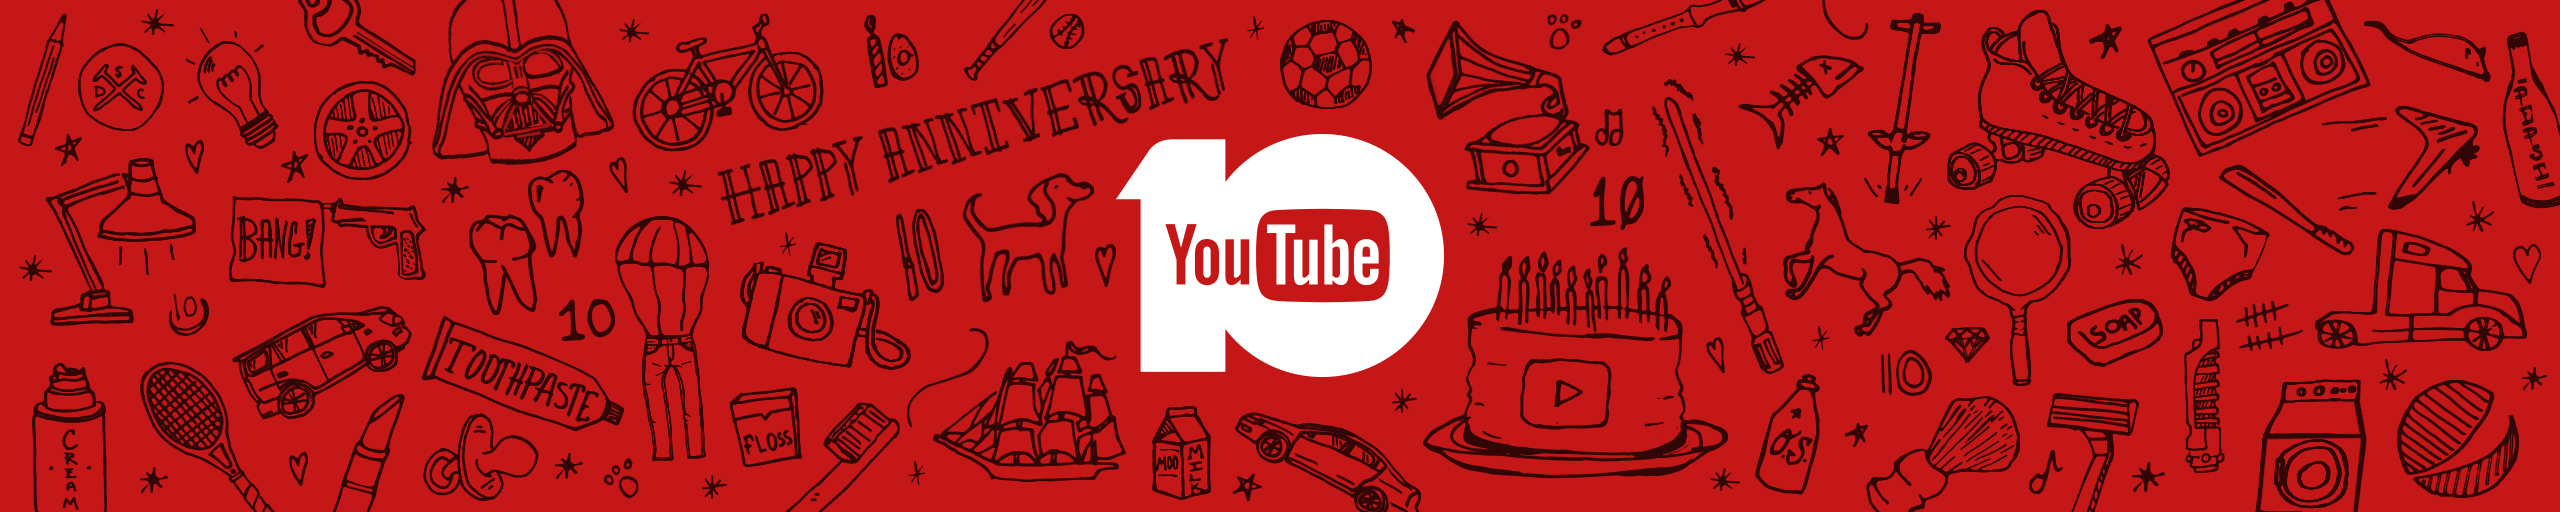 youtube anniversary, design agency